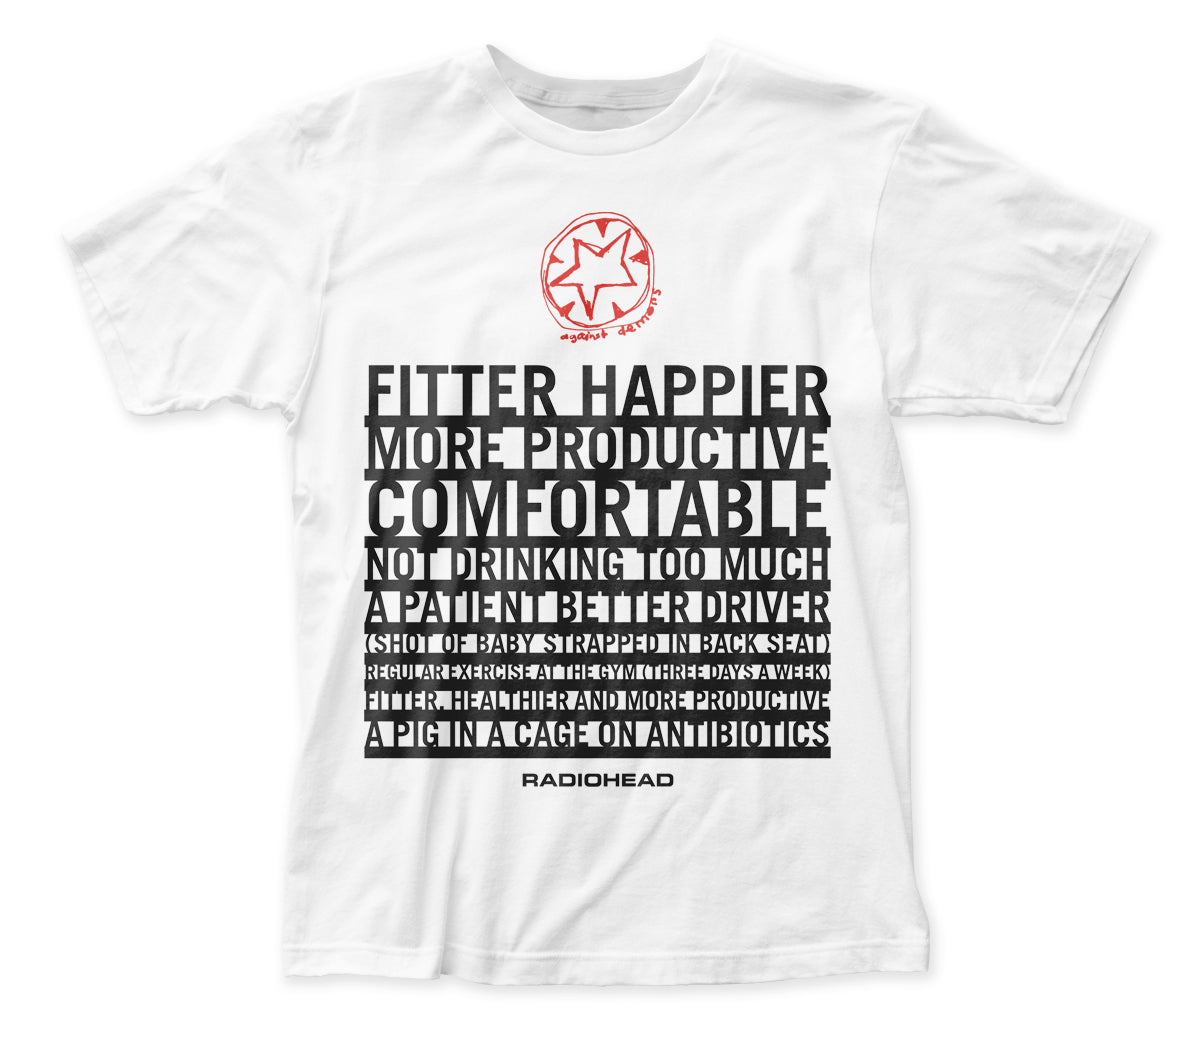 Radiohead Fitter Happier organic fitted jersey tee